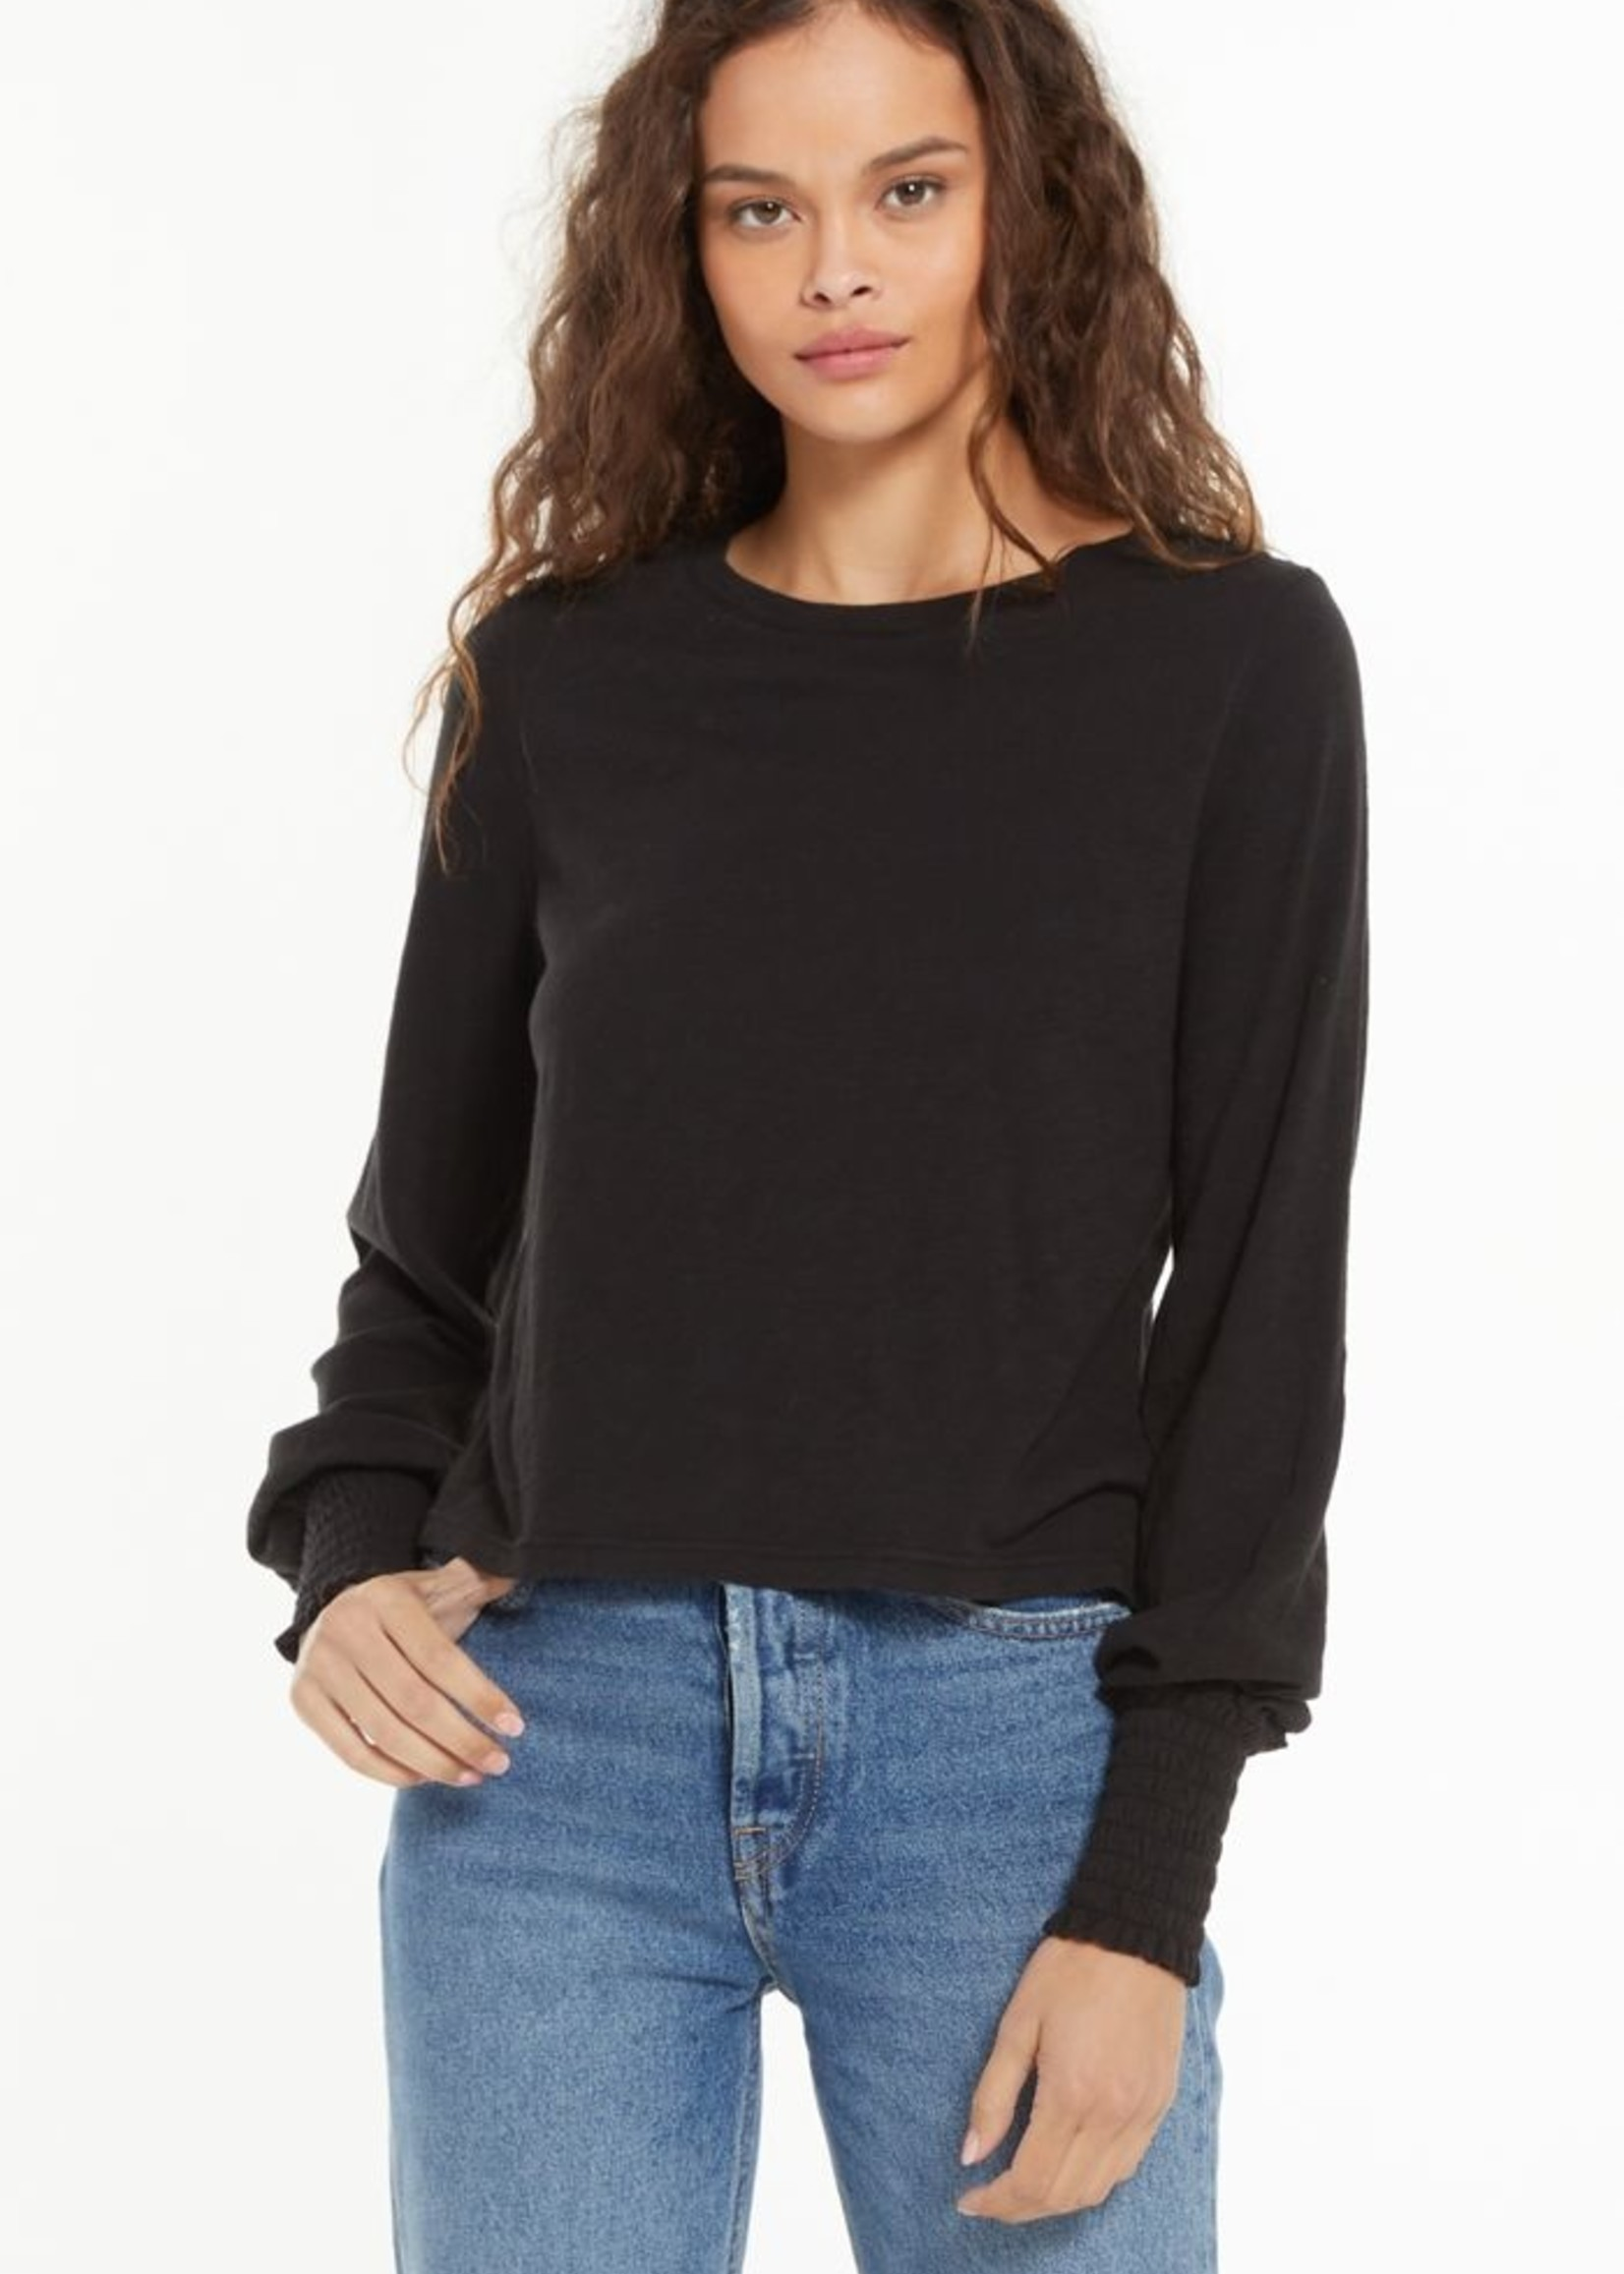 Z Supply Lyla Slub Long Sleeve - Black